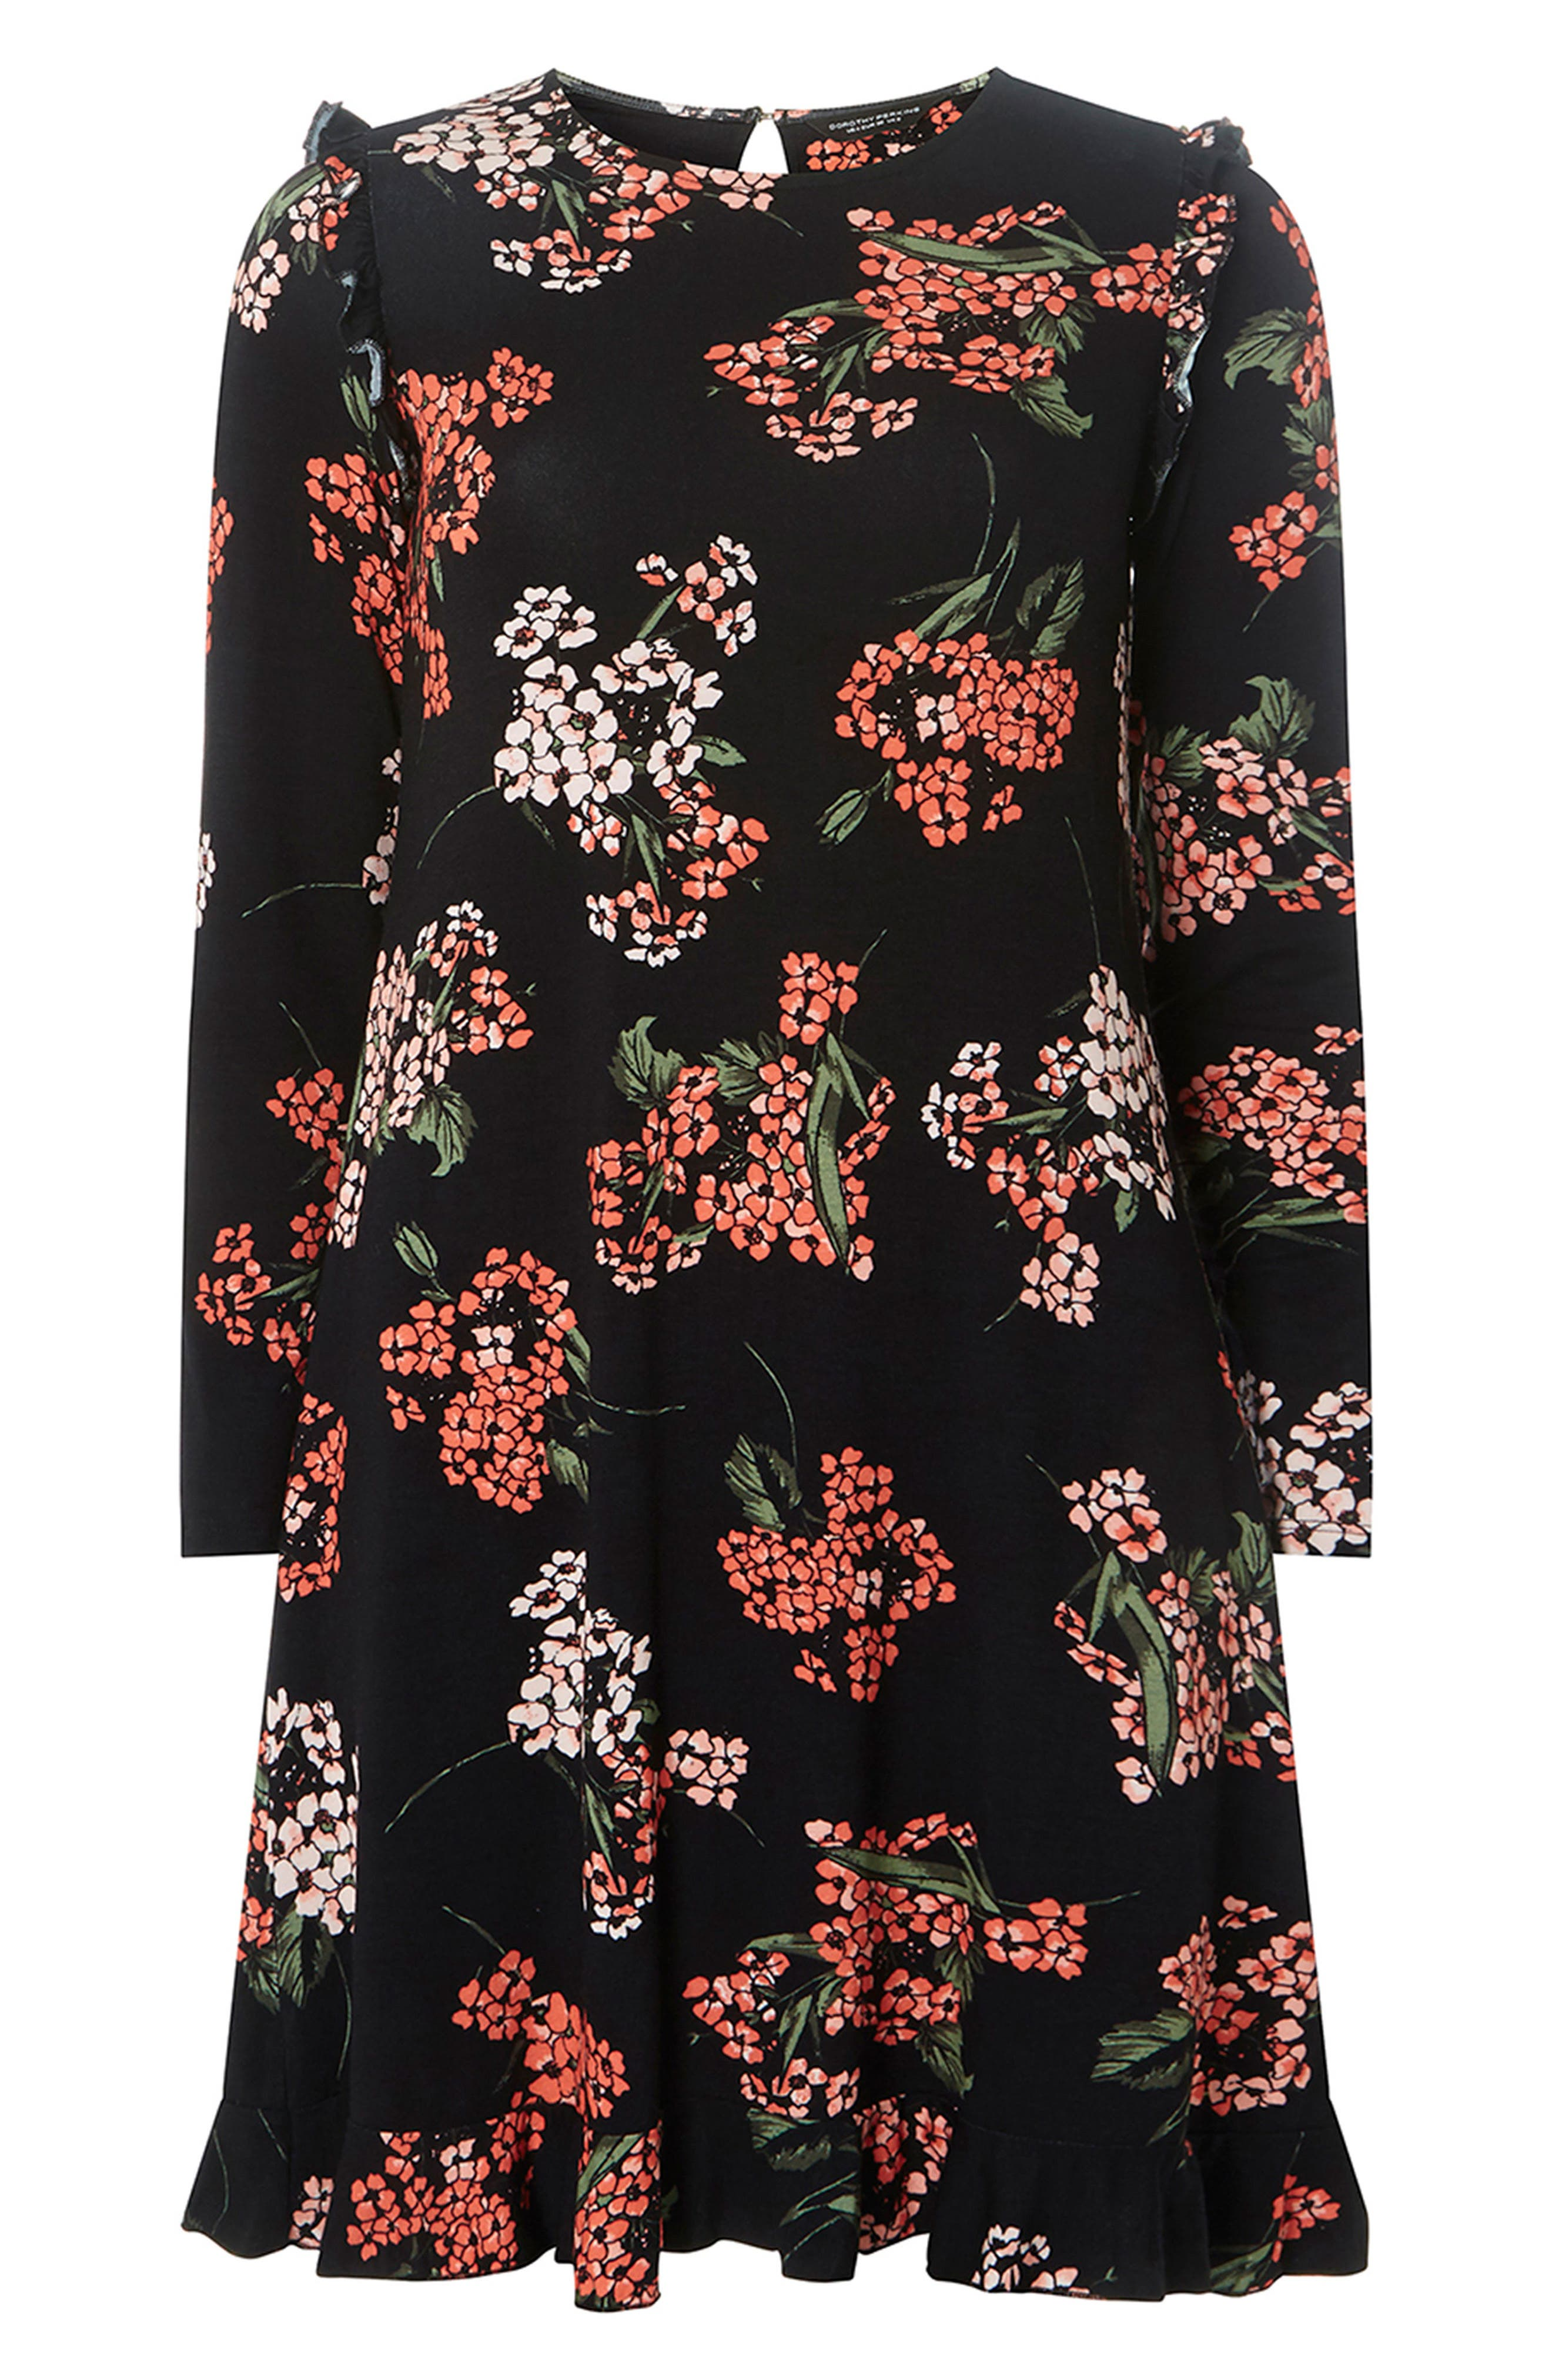 Floral Swing Dress,                             Alternate thumbnail 4, color,                             001